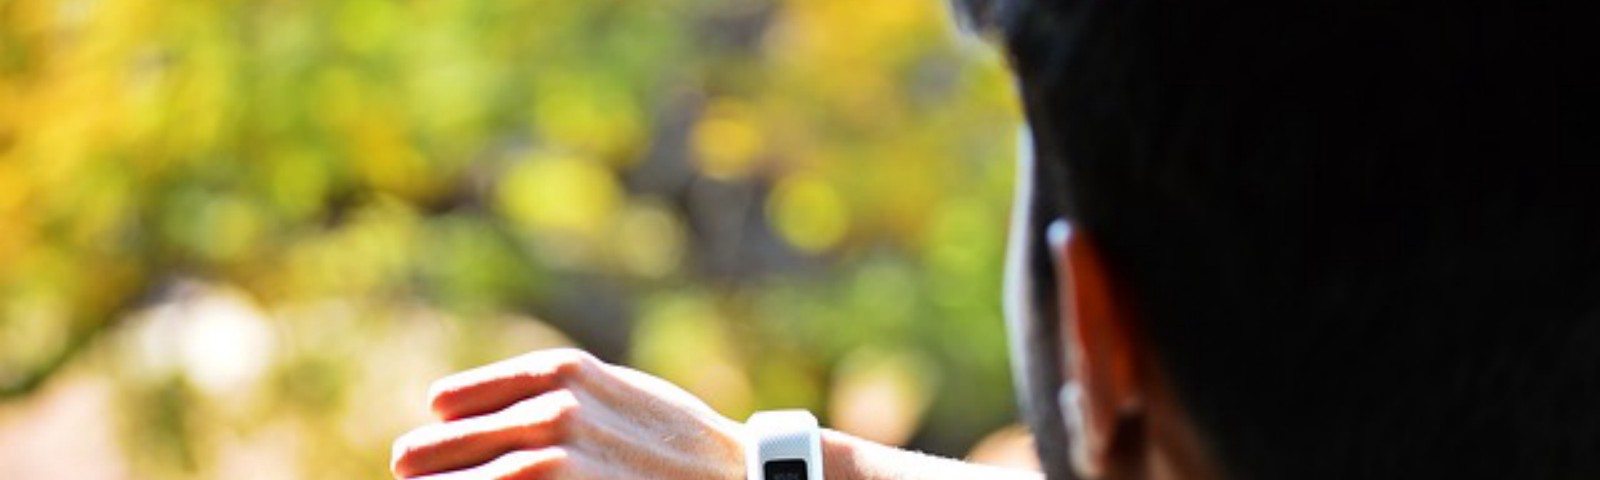 Why is your smart band not counting steps? We can help